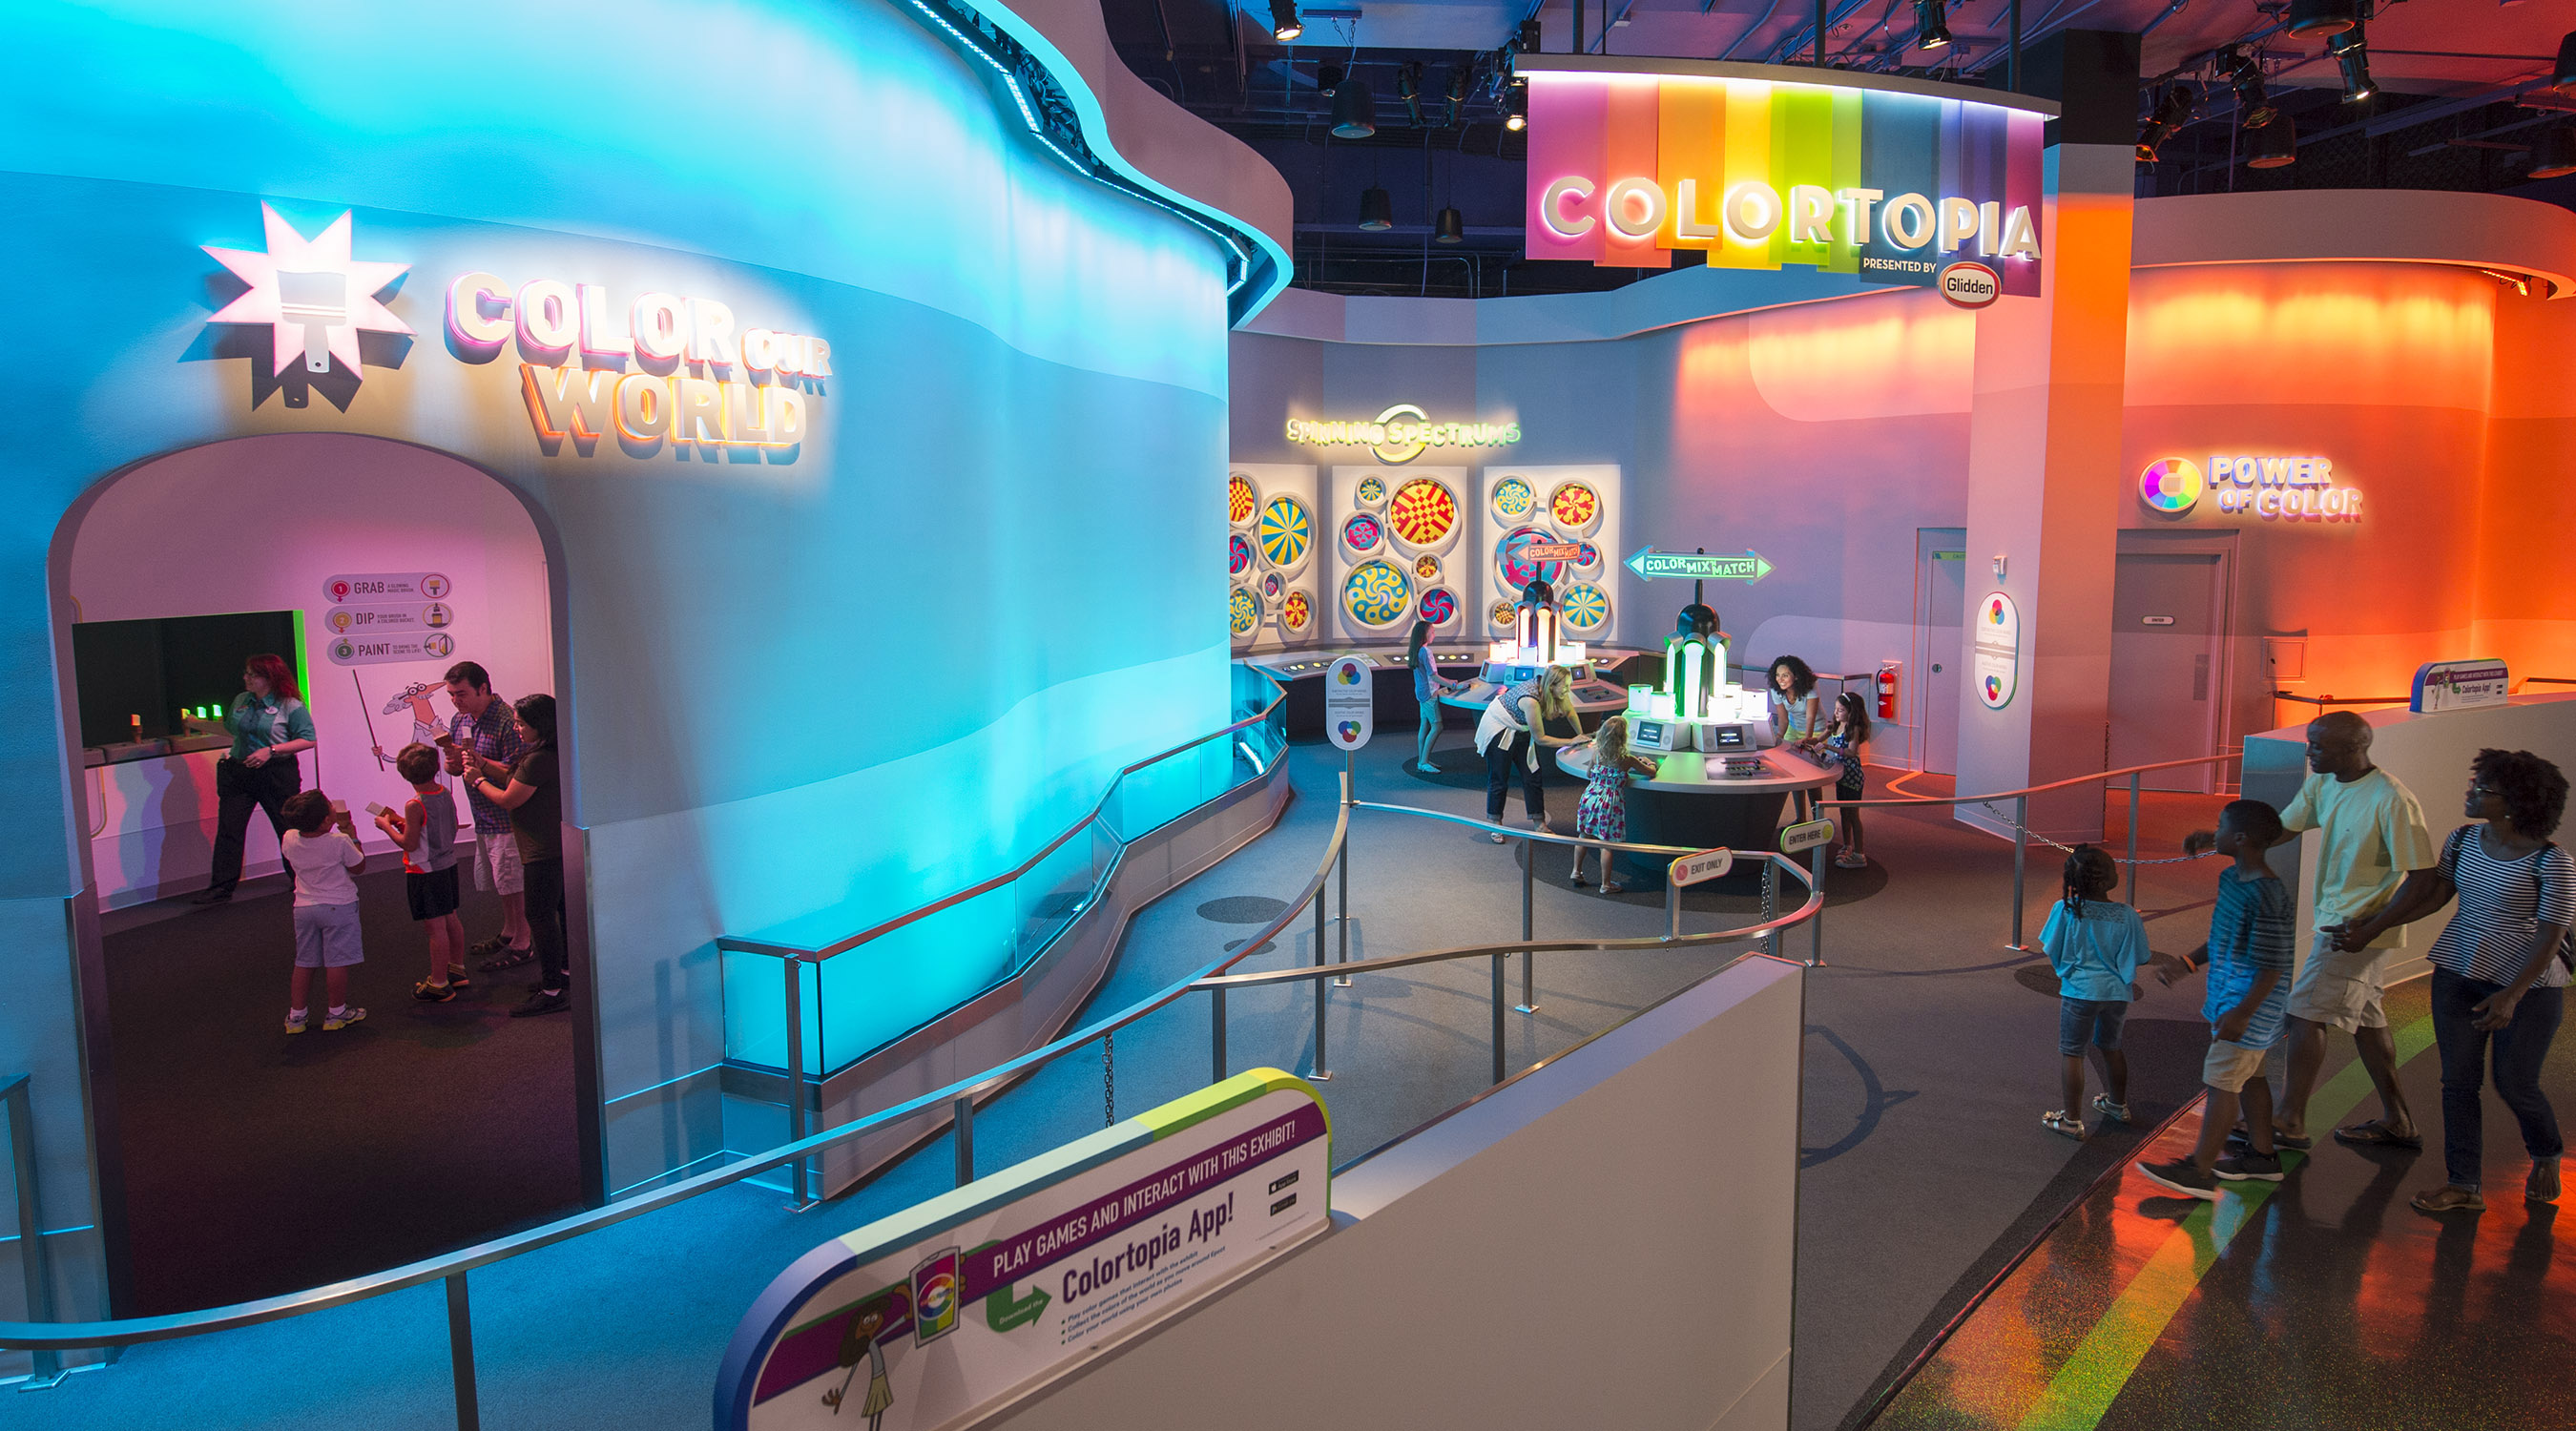 Epcot S Newest Attraction Colortopia In Innoventions